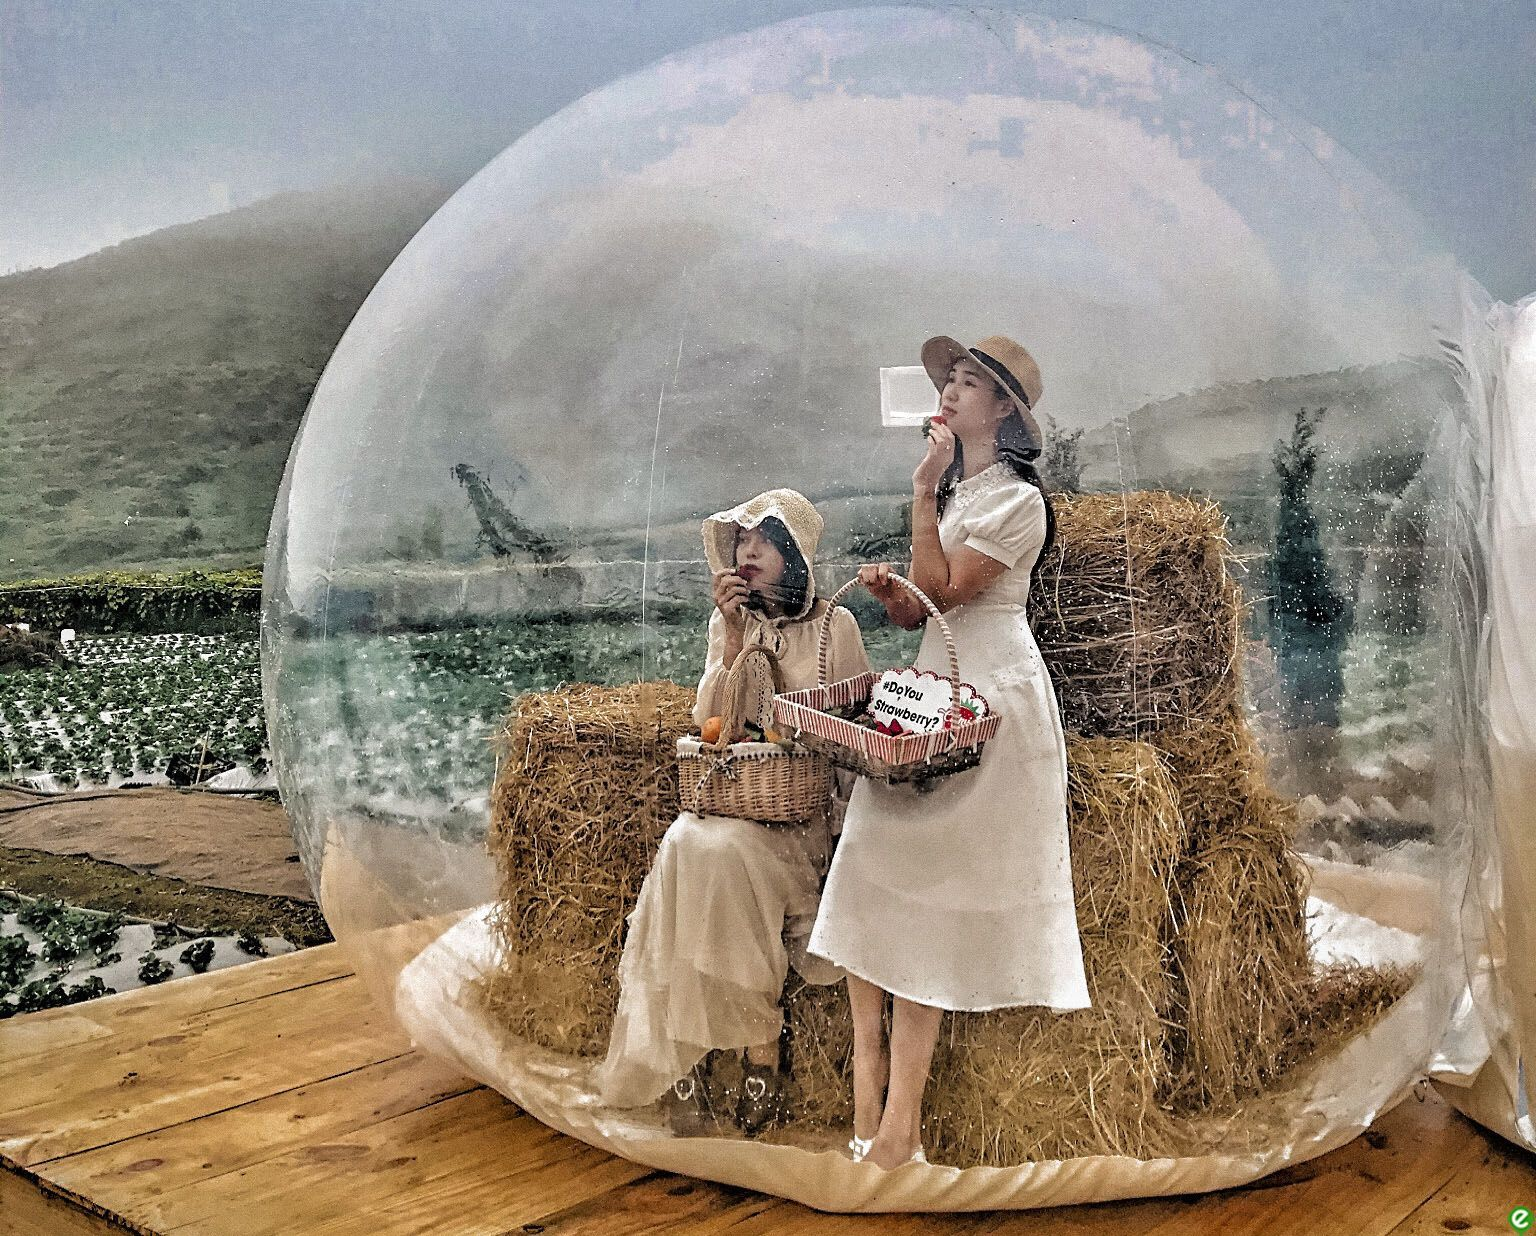 """Visiting the beautiful """"bubble house"""" in Moc Chau"""